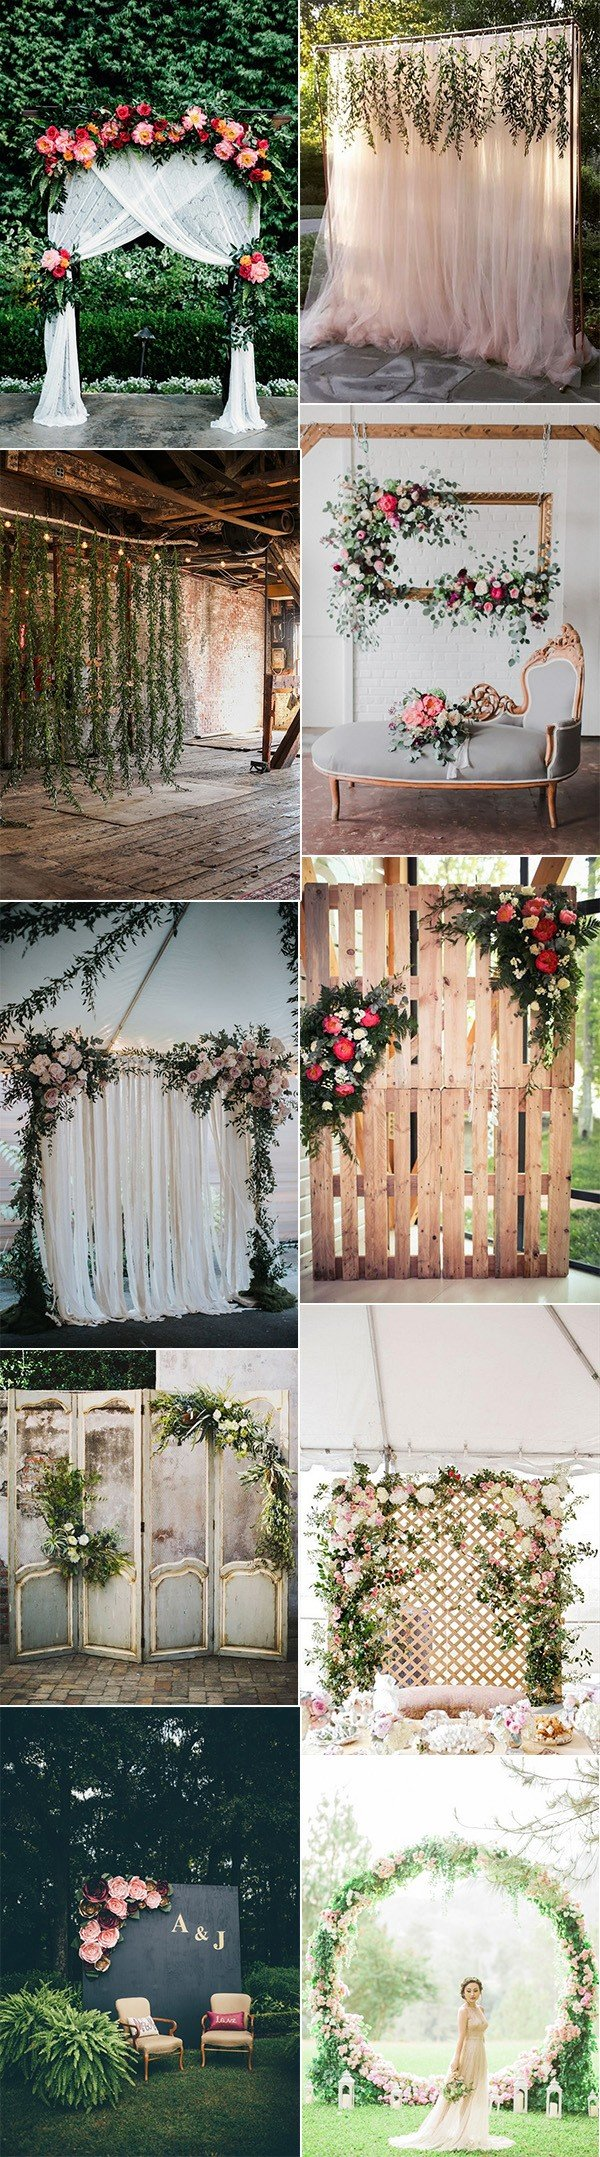 Trending 15 hottest wedding backdrop ideas for your ceremony oh hottest wedding backdrop ideas for your ceremony junglespirit Image collections